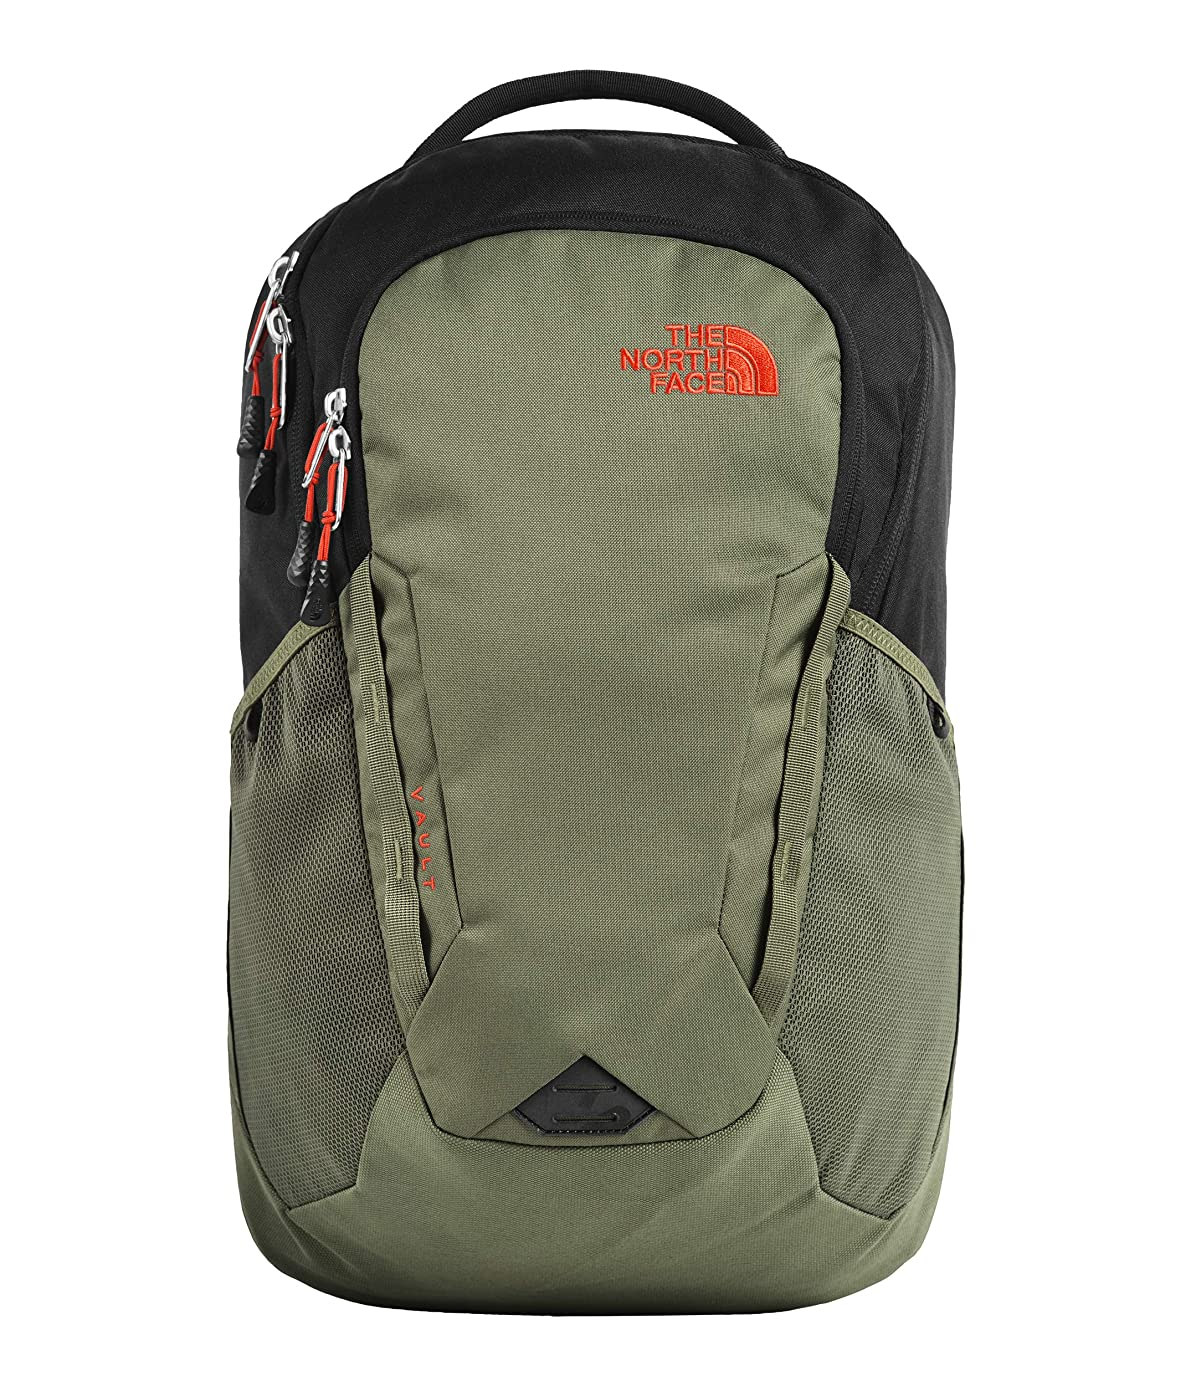 The North Face Vault Backpack yzx3640494